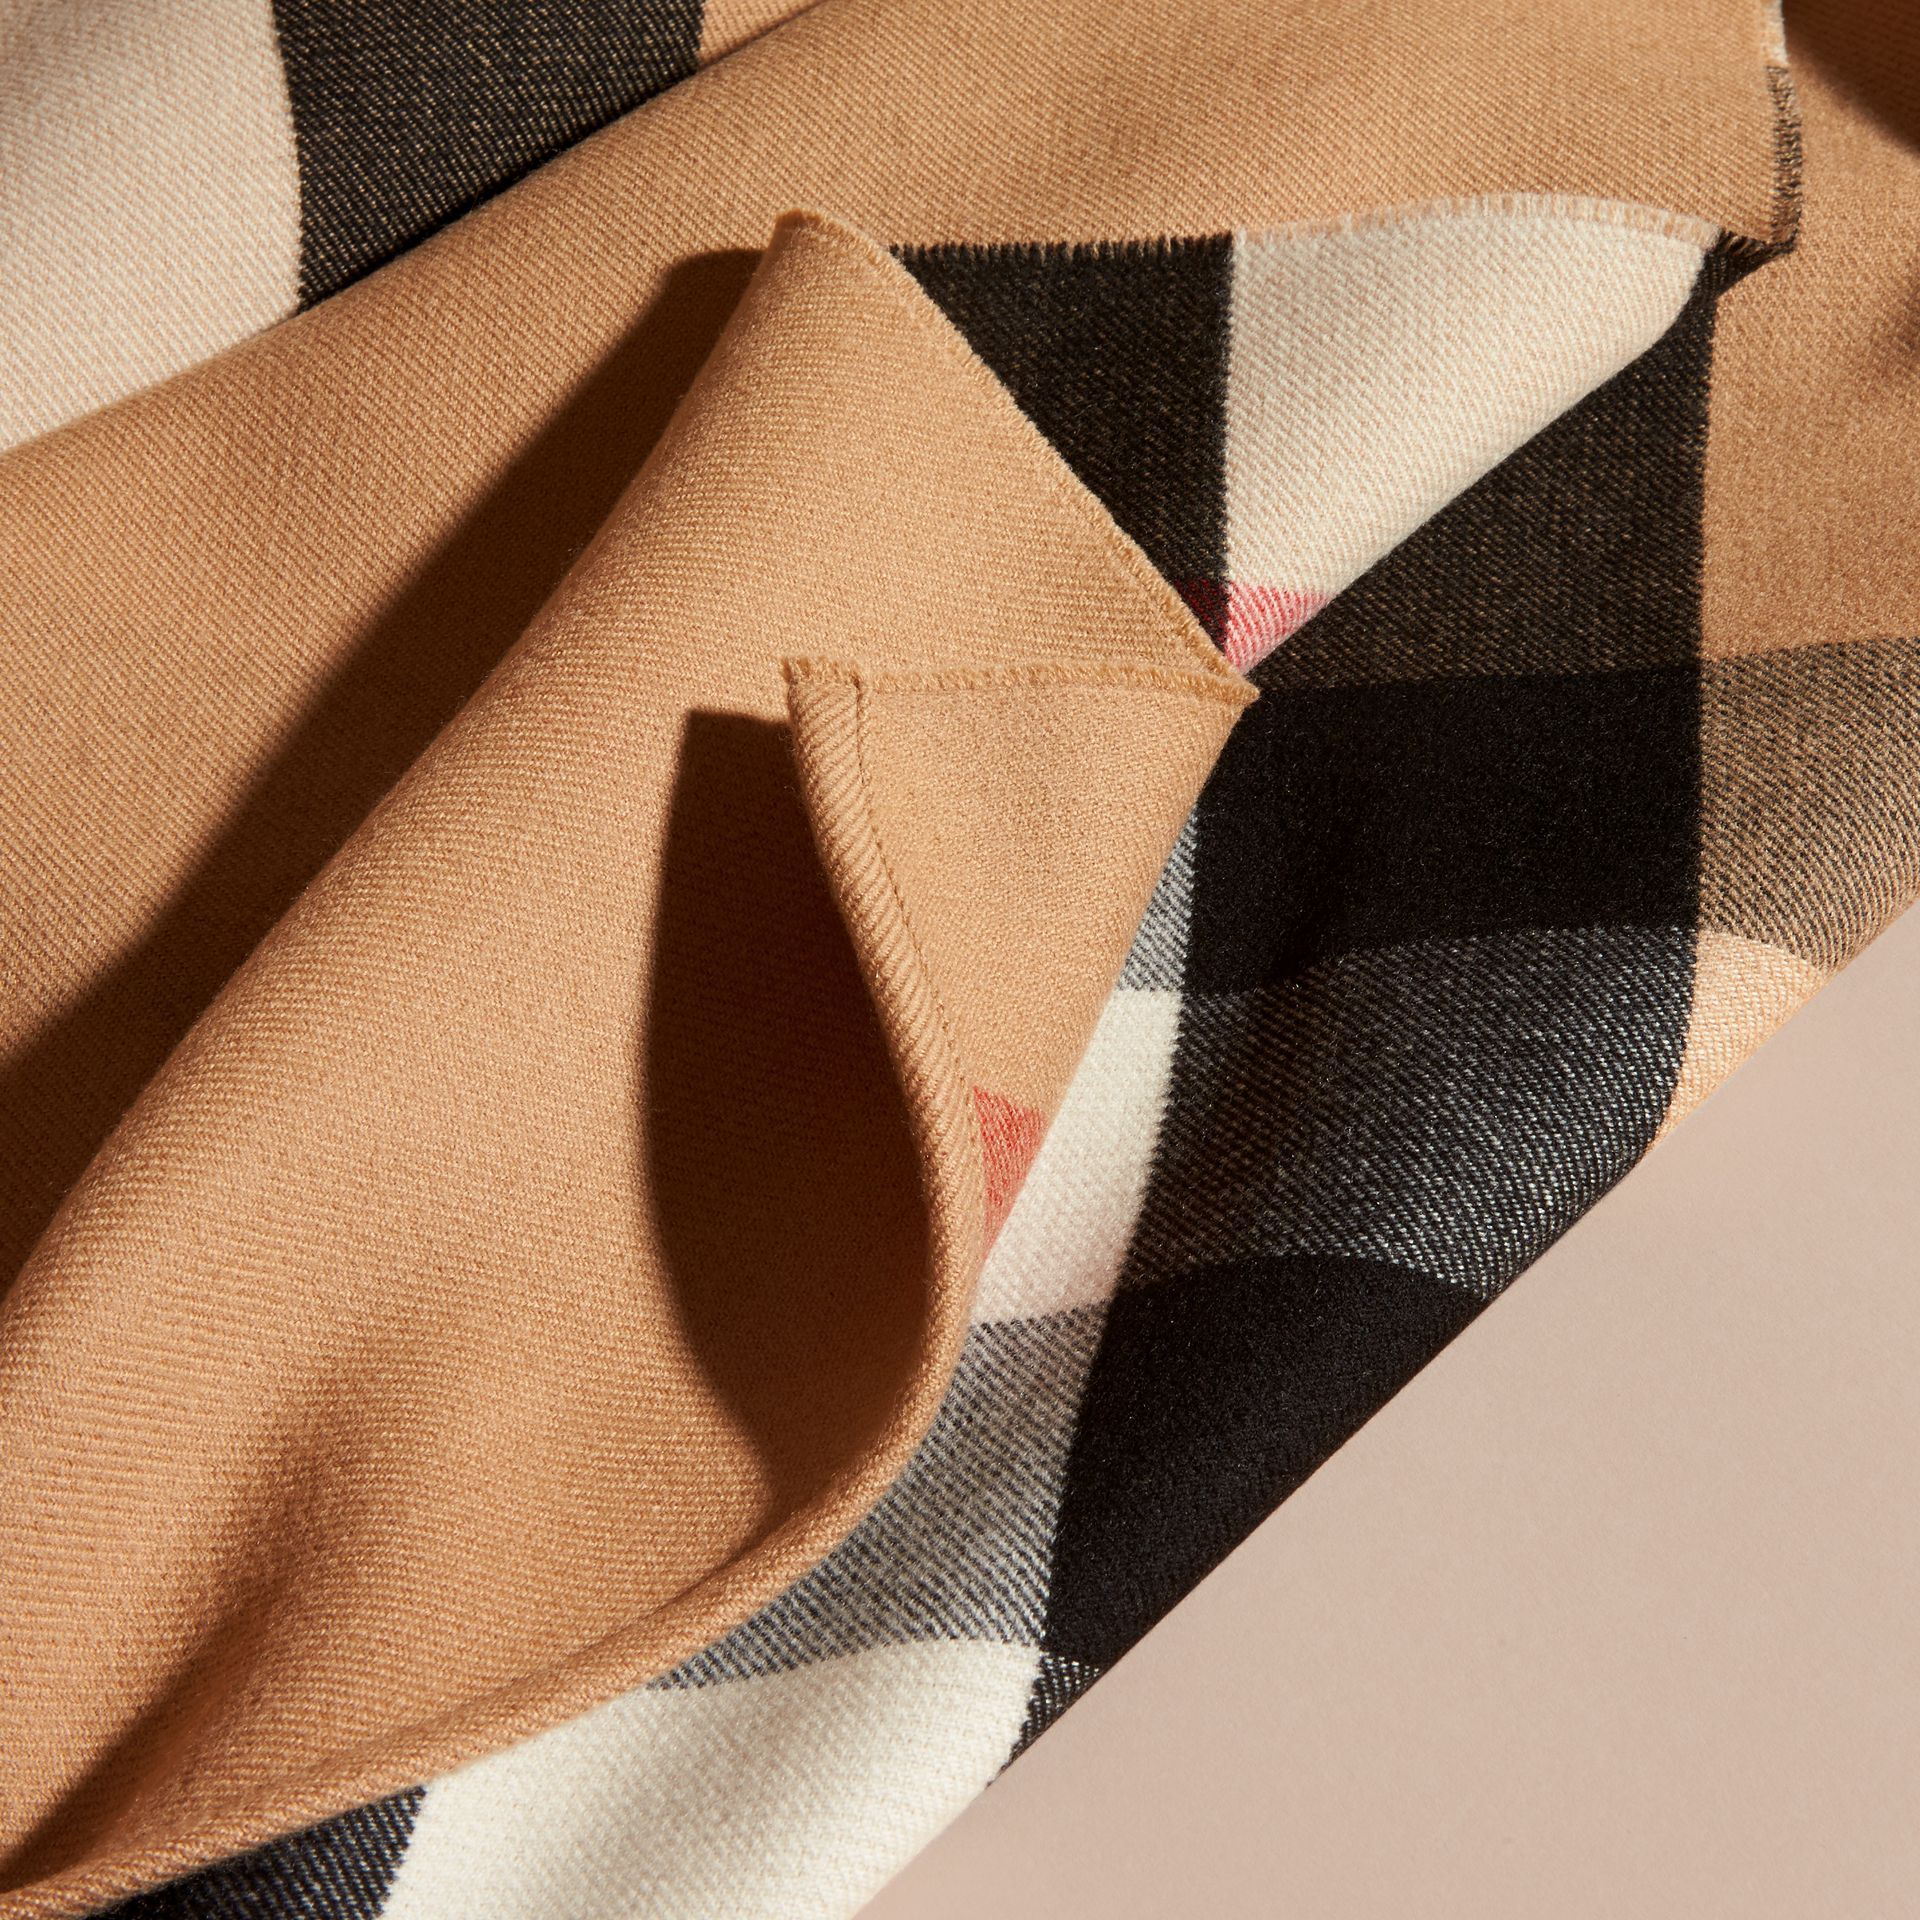 Reversible Check Merino Wool Poncho in Camel - Women | Burberry Canada - gallery image 2